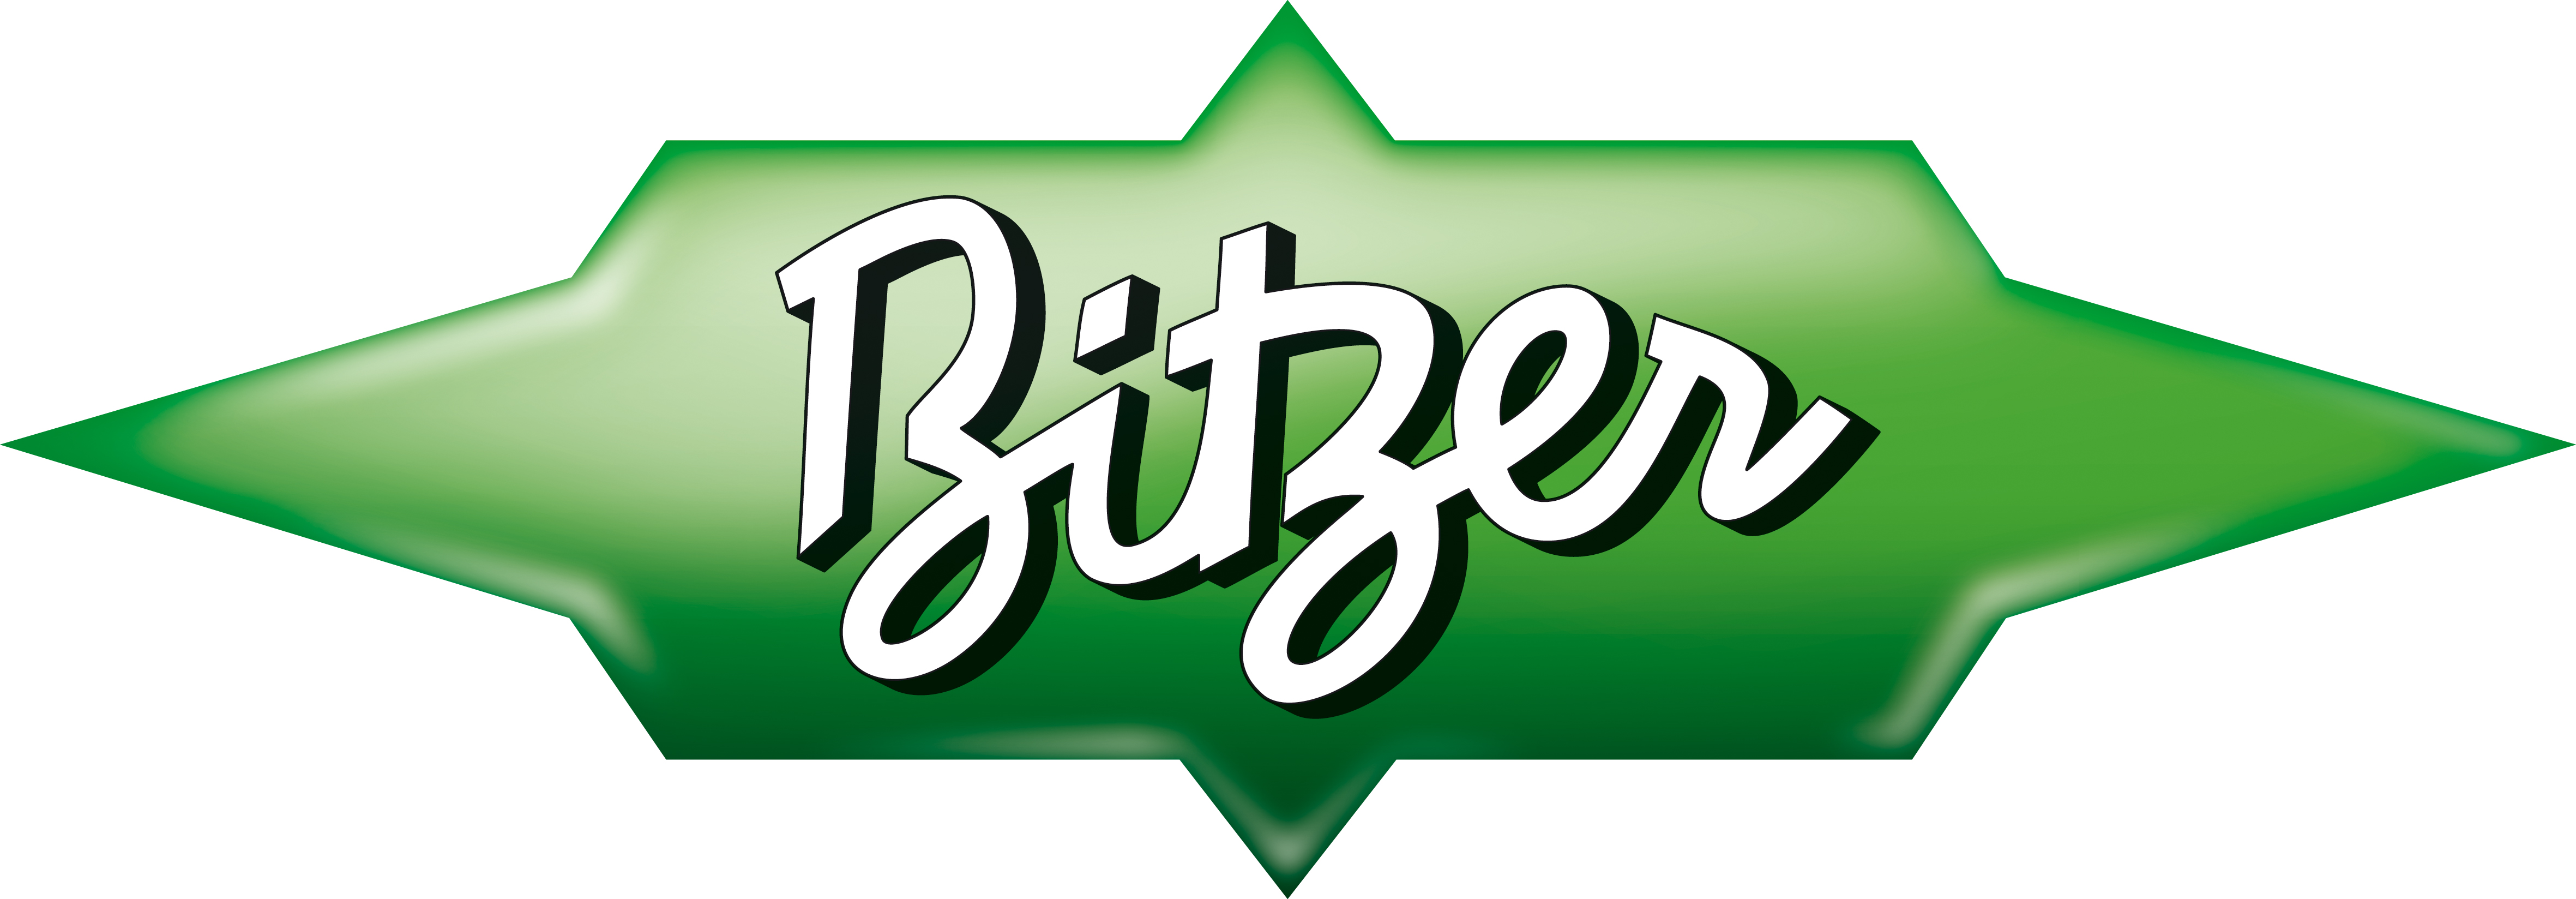 BITZER Logo 400mm XXL RGB Green Black